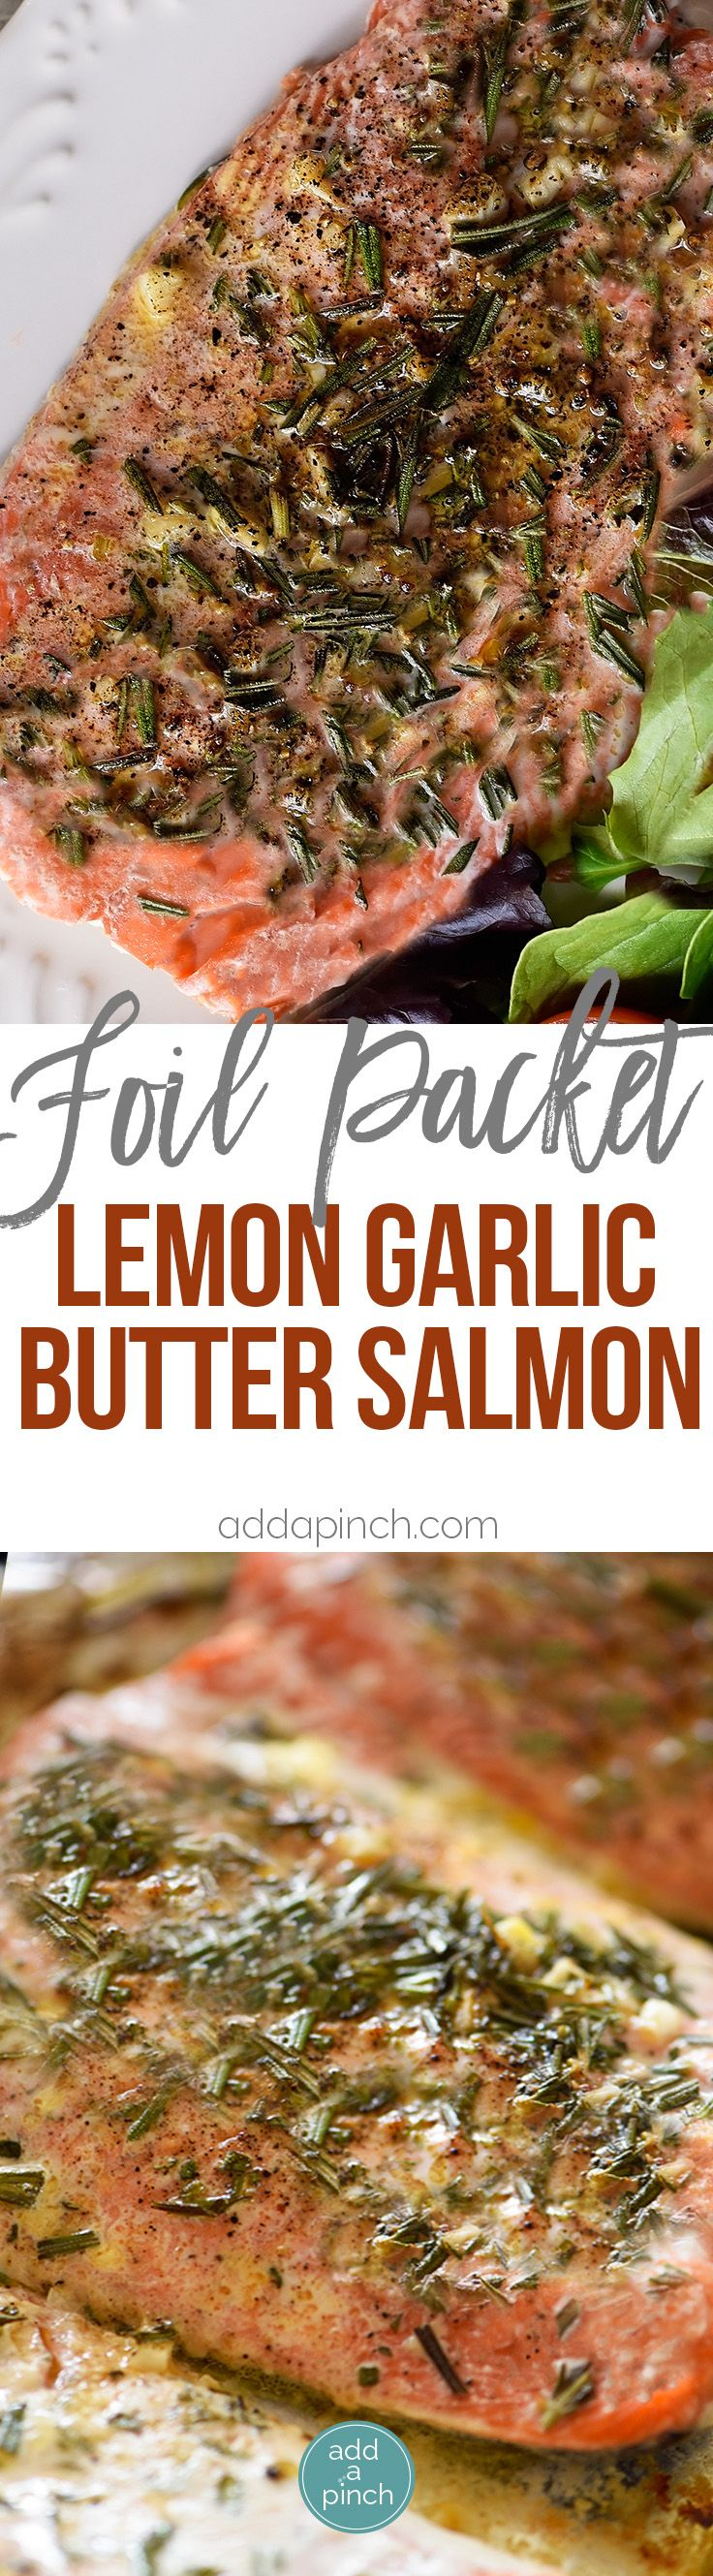 Lemon Garlic Butter Salmon Recipe - This Lemon Garlic Butter Salmon recipe makes a quick and easy recipe! Baked in a foil packet for incredibly tender salmon with easy cleanup! // addapinch.com